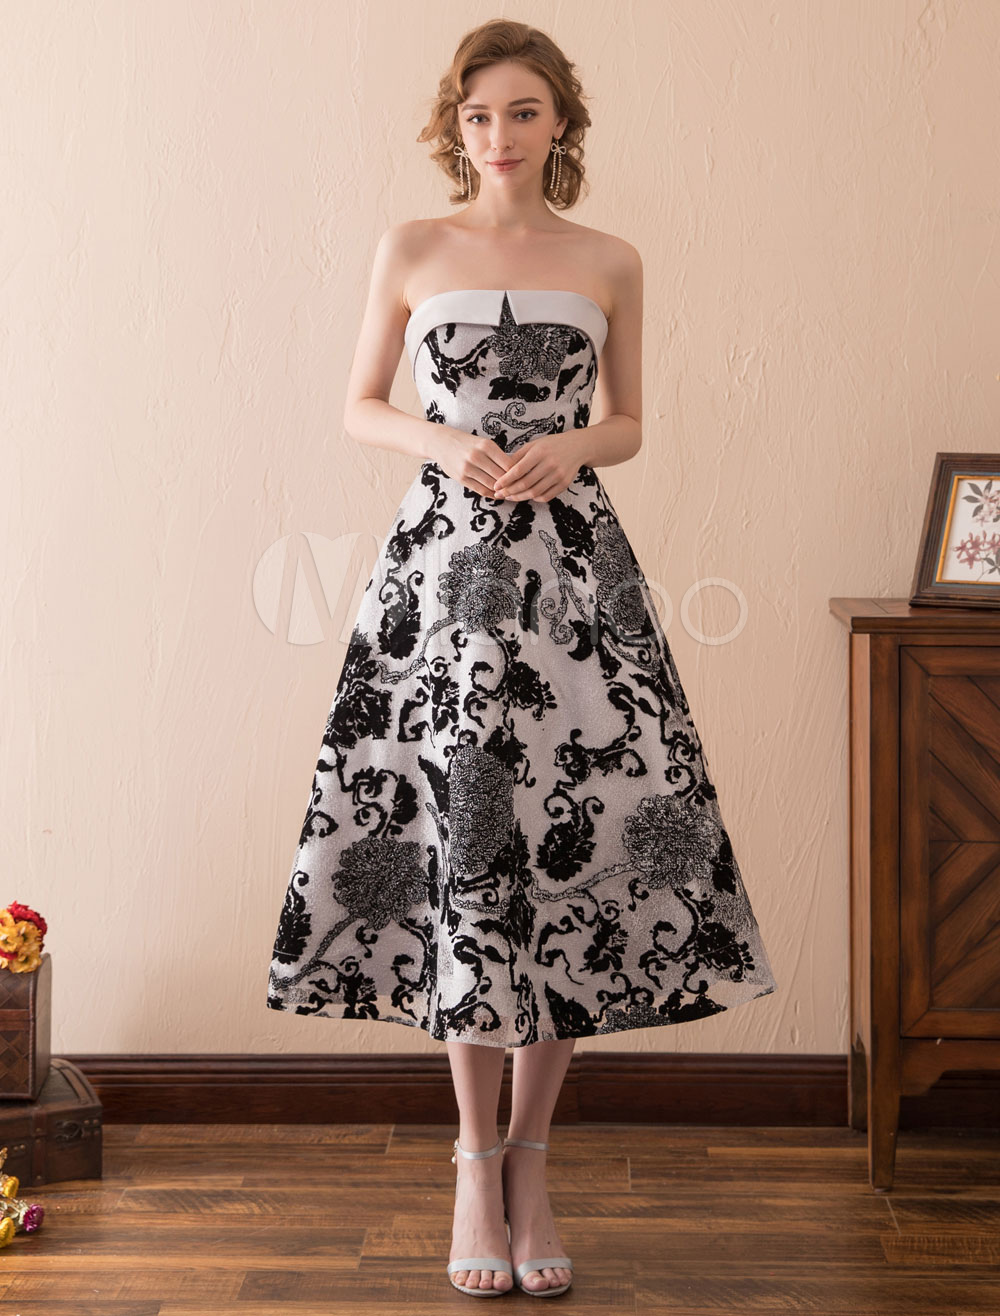 Buy Black Cocktail Dresses African Print Strapless Lace Sash Tea Length Formal Party Dress for $76.49 in Milanoo store